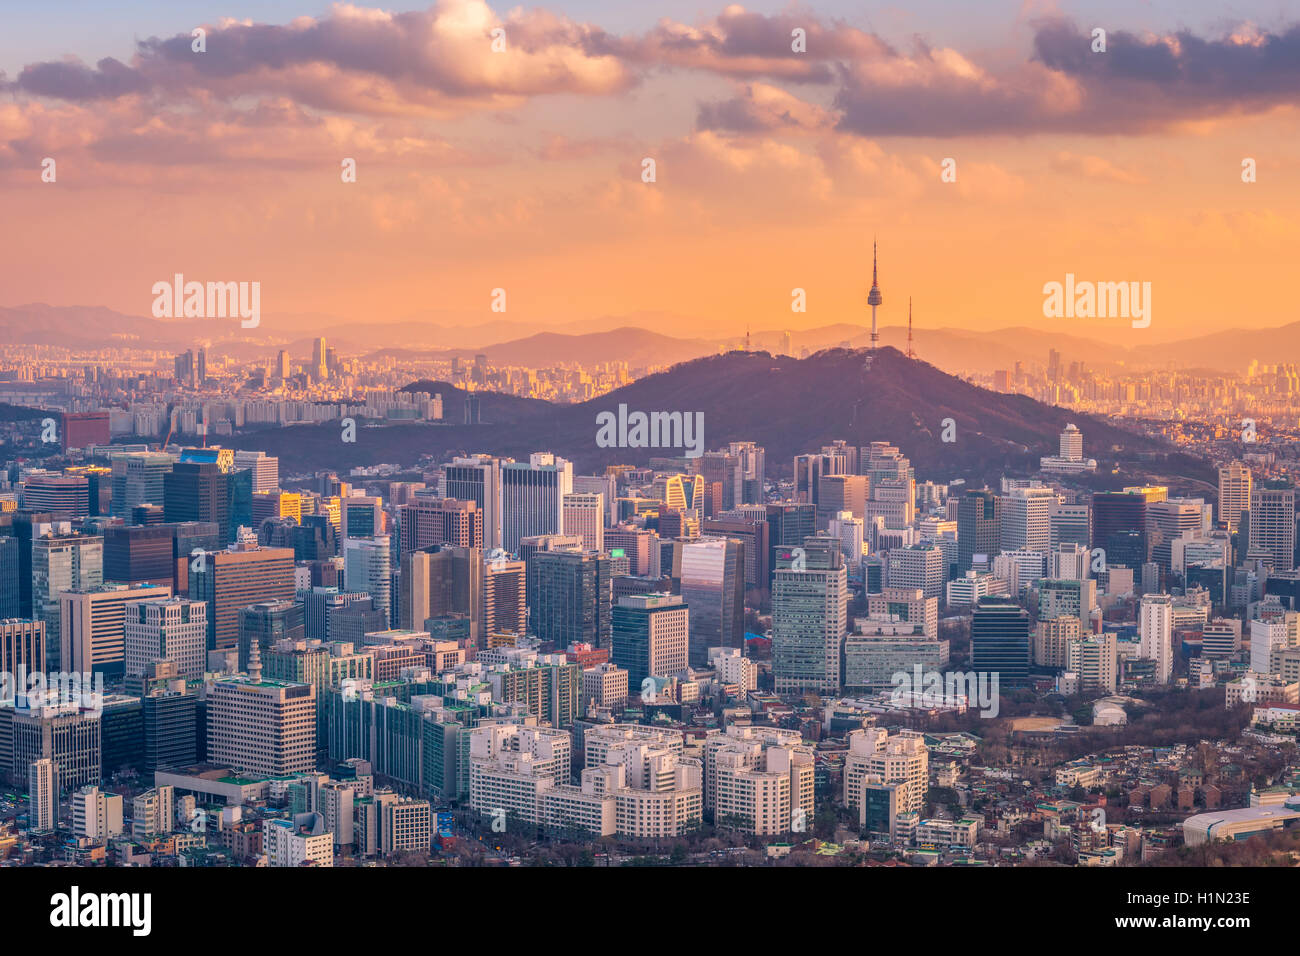 Seoul City Skyline,South Korea - Stock Image